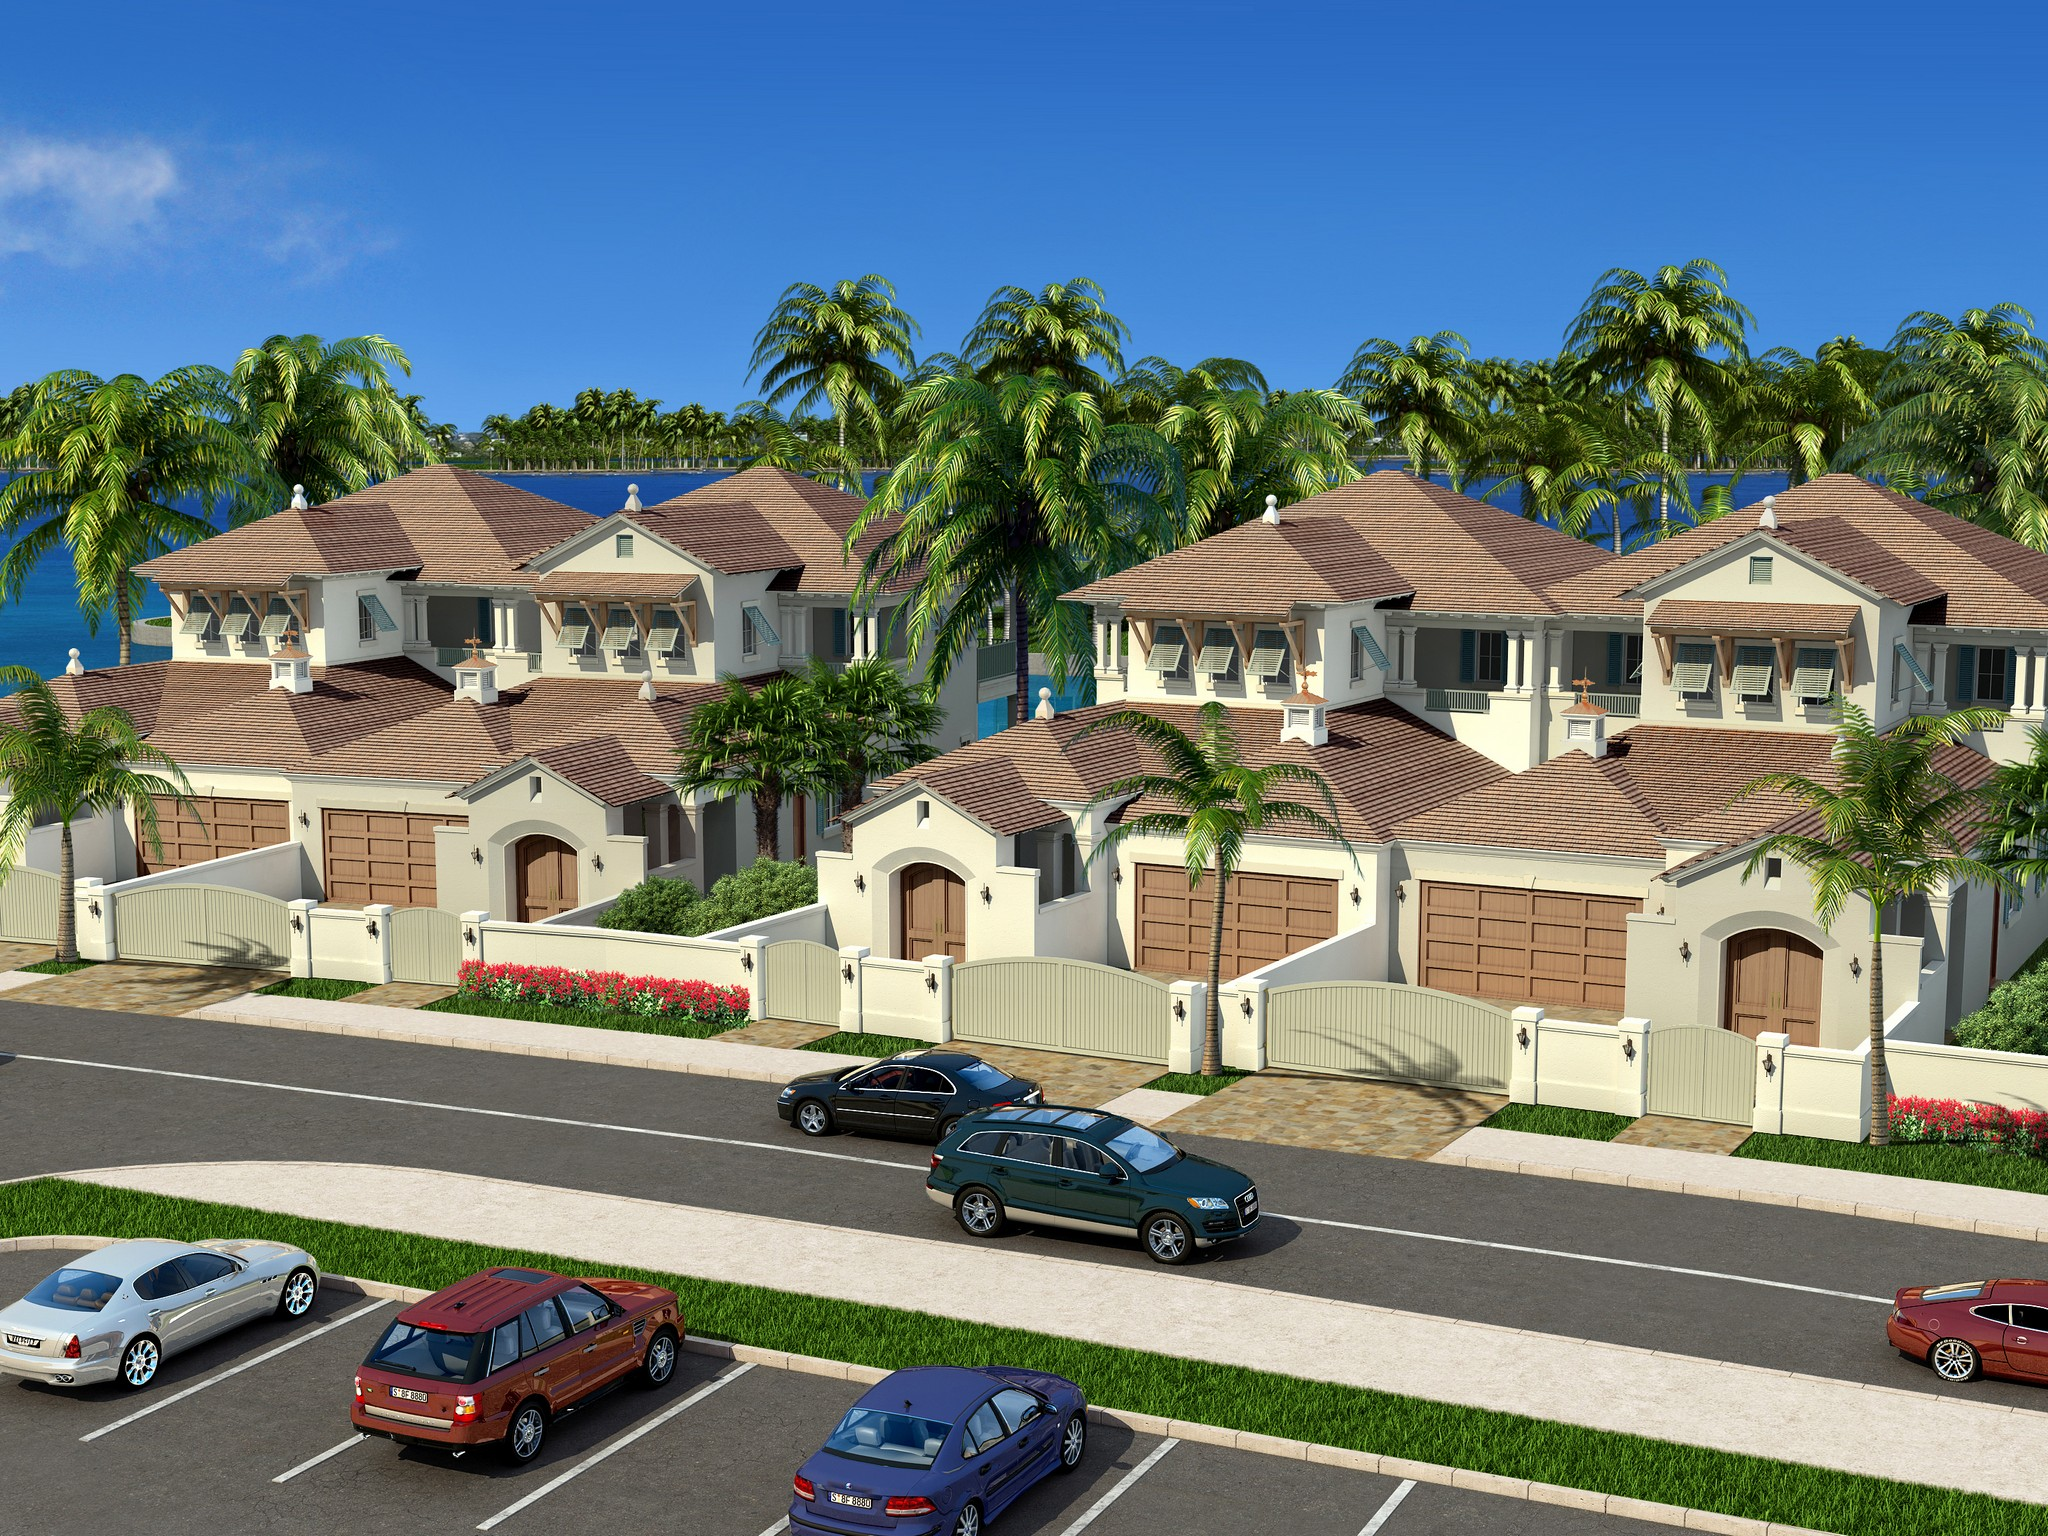 Moradia em banda para Venda às Luxurious Riverfront Townhome on Royal Palm Pointe 21 Royal Palm Pointe #3 Vero Beach, Florida 32960 Estados Unidos